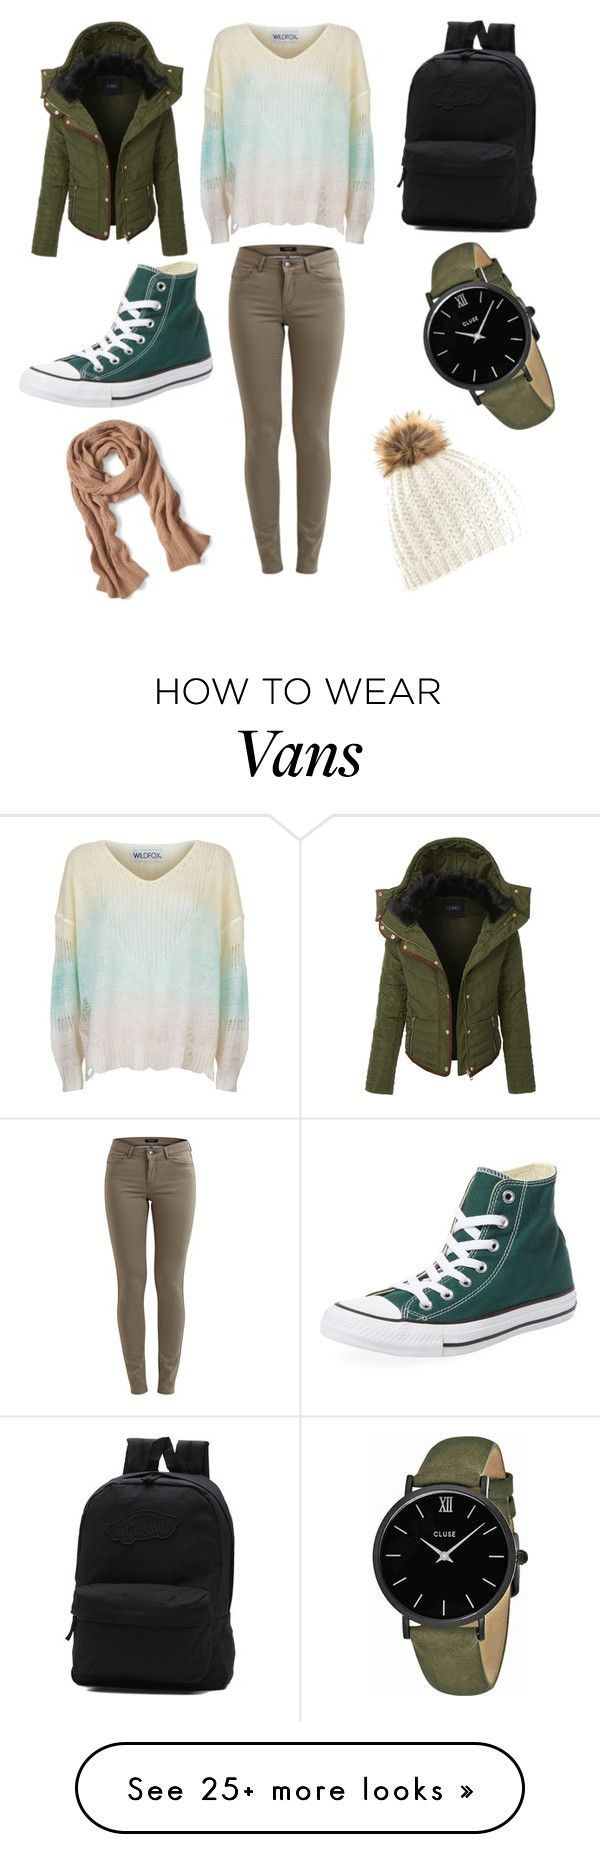 """""""Greeny Beanie"""" by ladyyana87 on Polyvore featuring Wildfox, LE3NO, Converse, Vans, CLUSE and Banana Republic"""